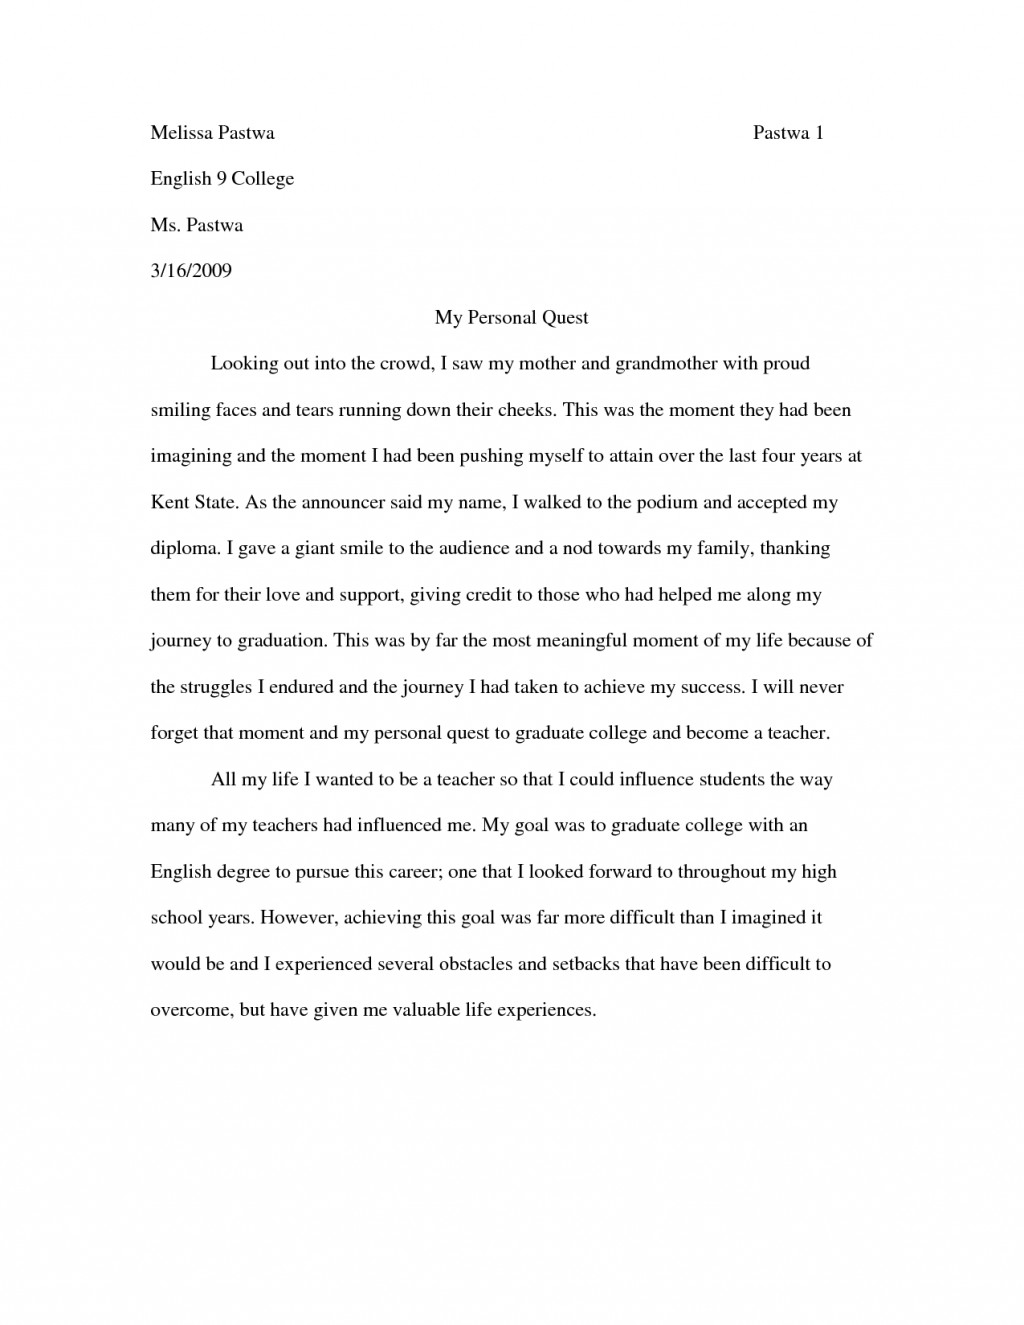 009 Narrative Essay Dialogue Example Of L Stirring Personal Examples For 2nd Graders Topics Grade 6 Middle School Pdf Large